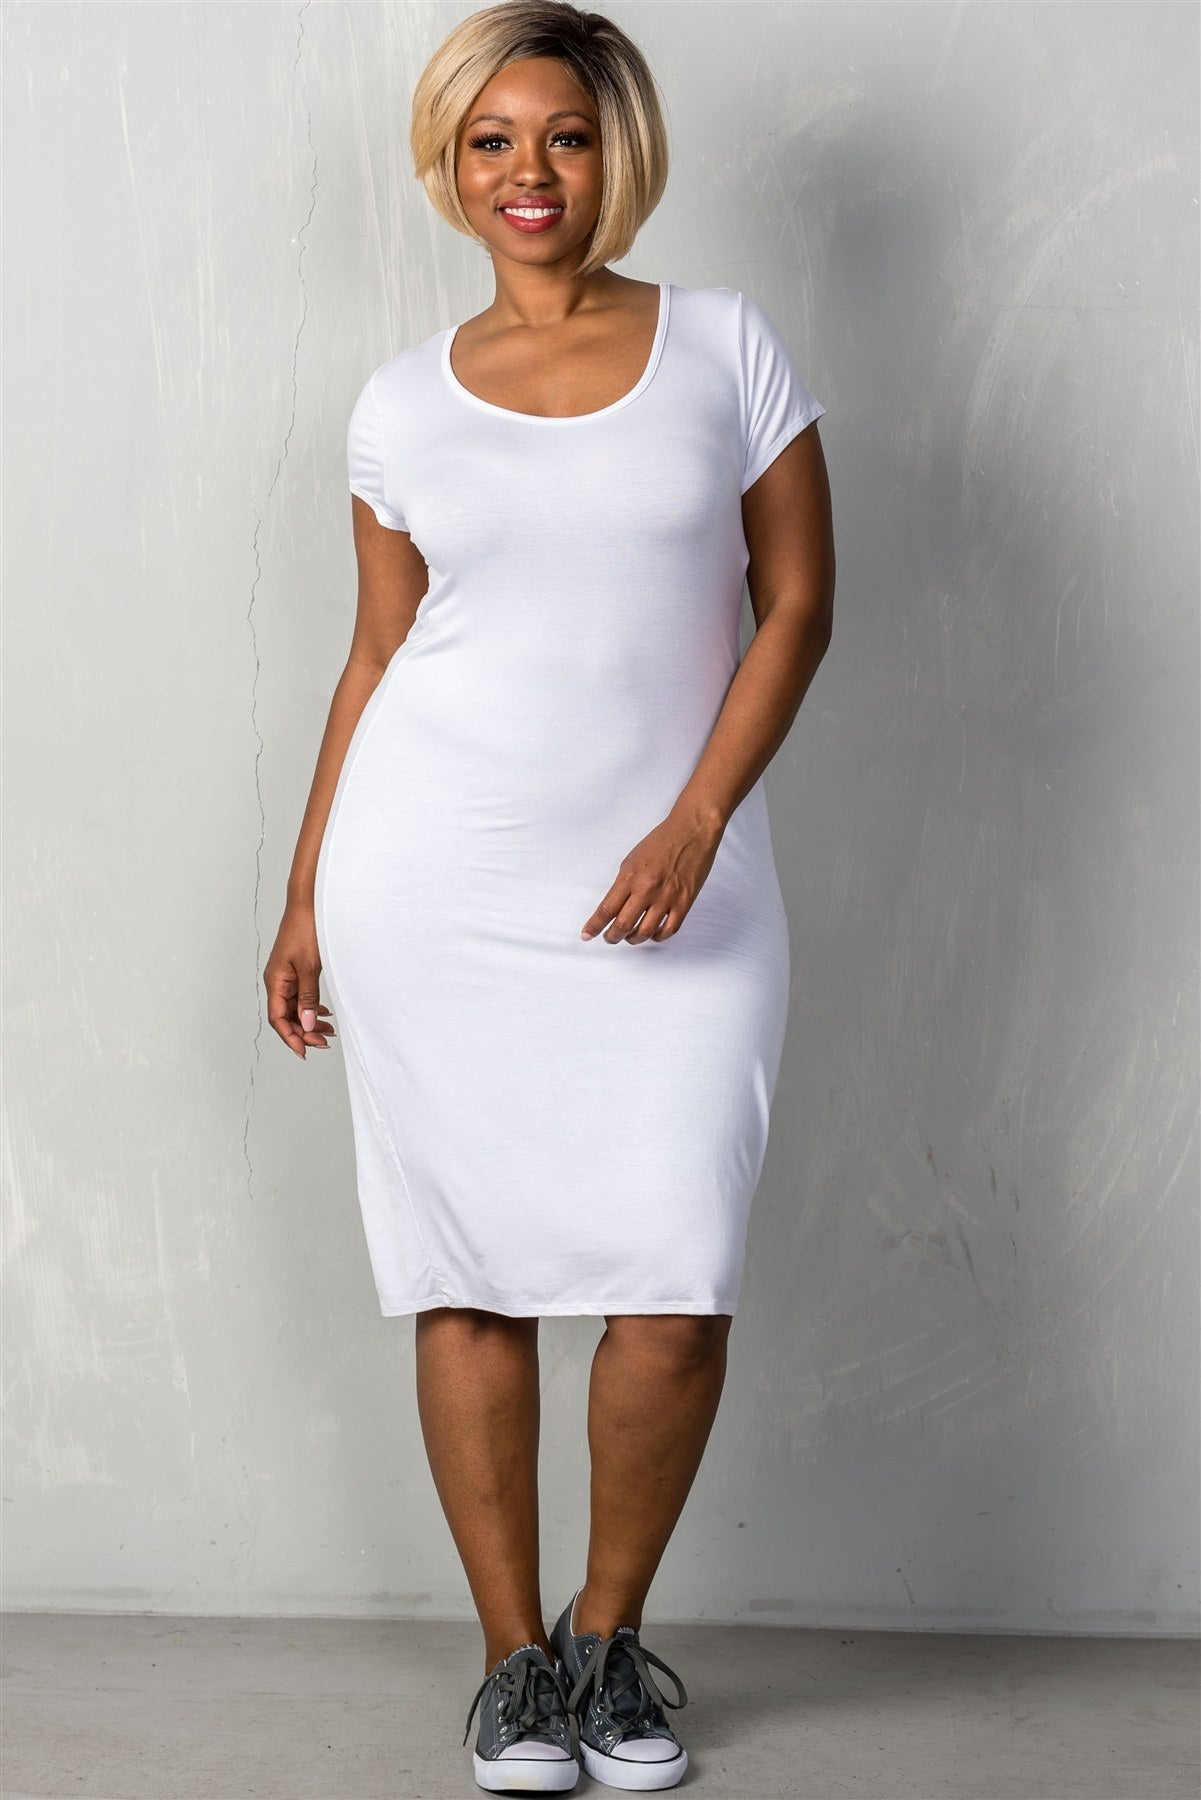 Ladies fashion plus size short sleeves stretchy fitted midi length round neckline dress